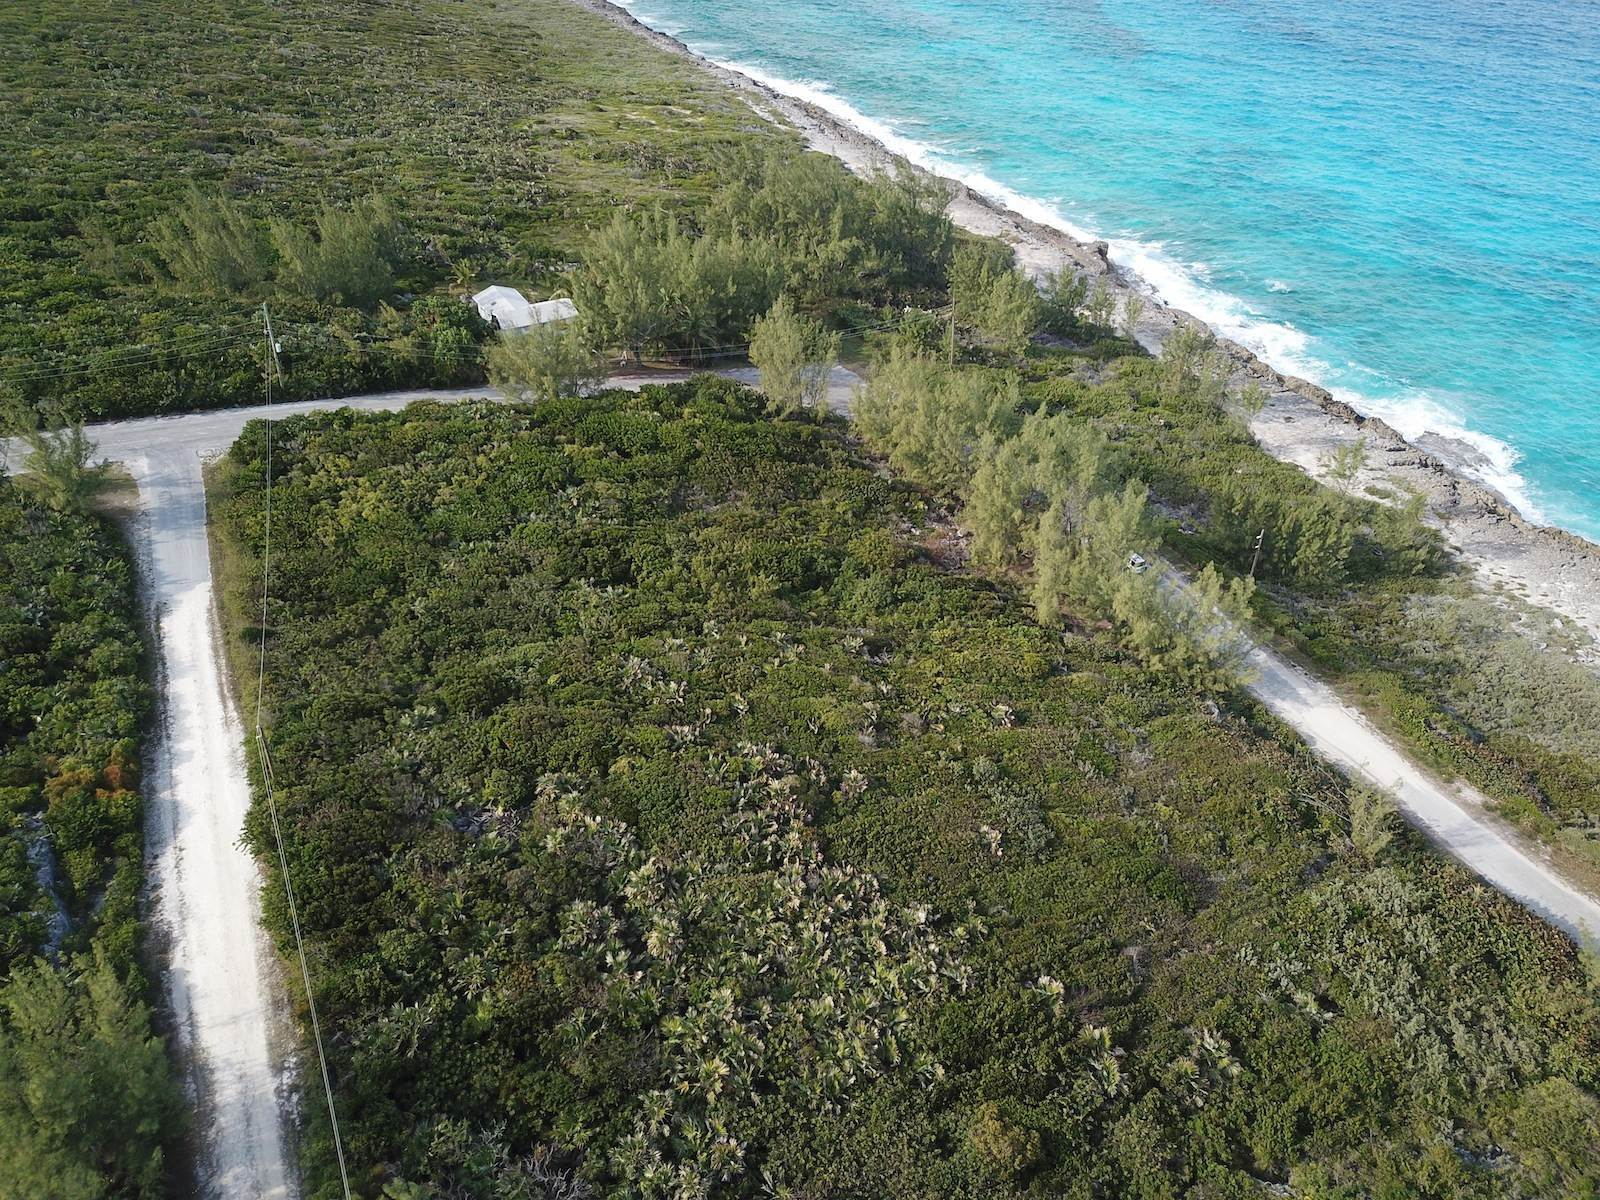 Land for Sale at Great Rainbow Bay Lot, Section A, Block 6, Lot 2 - MLS 39741 Rainbow Bay, Eleuthera, Bahamas